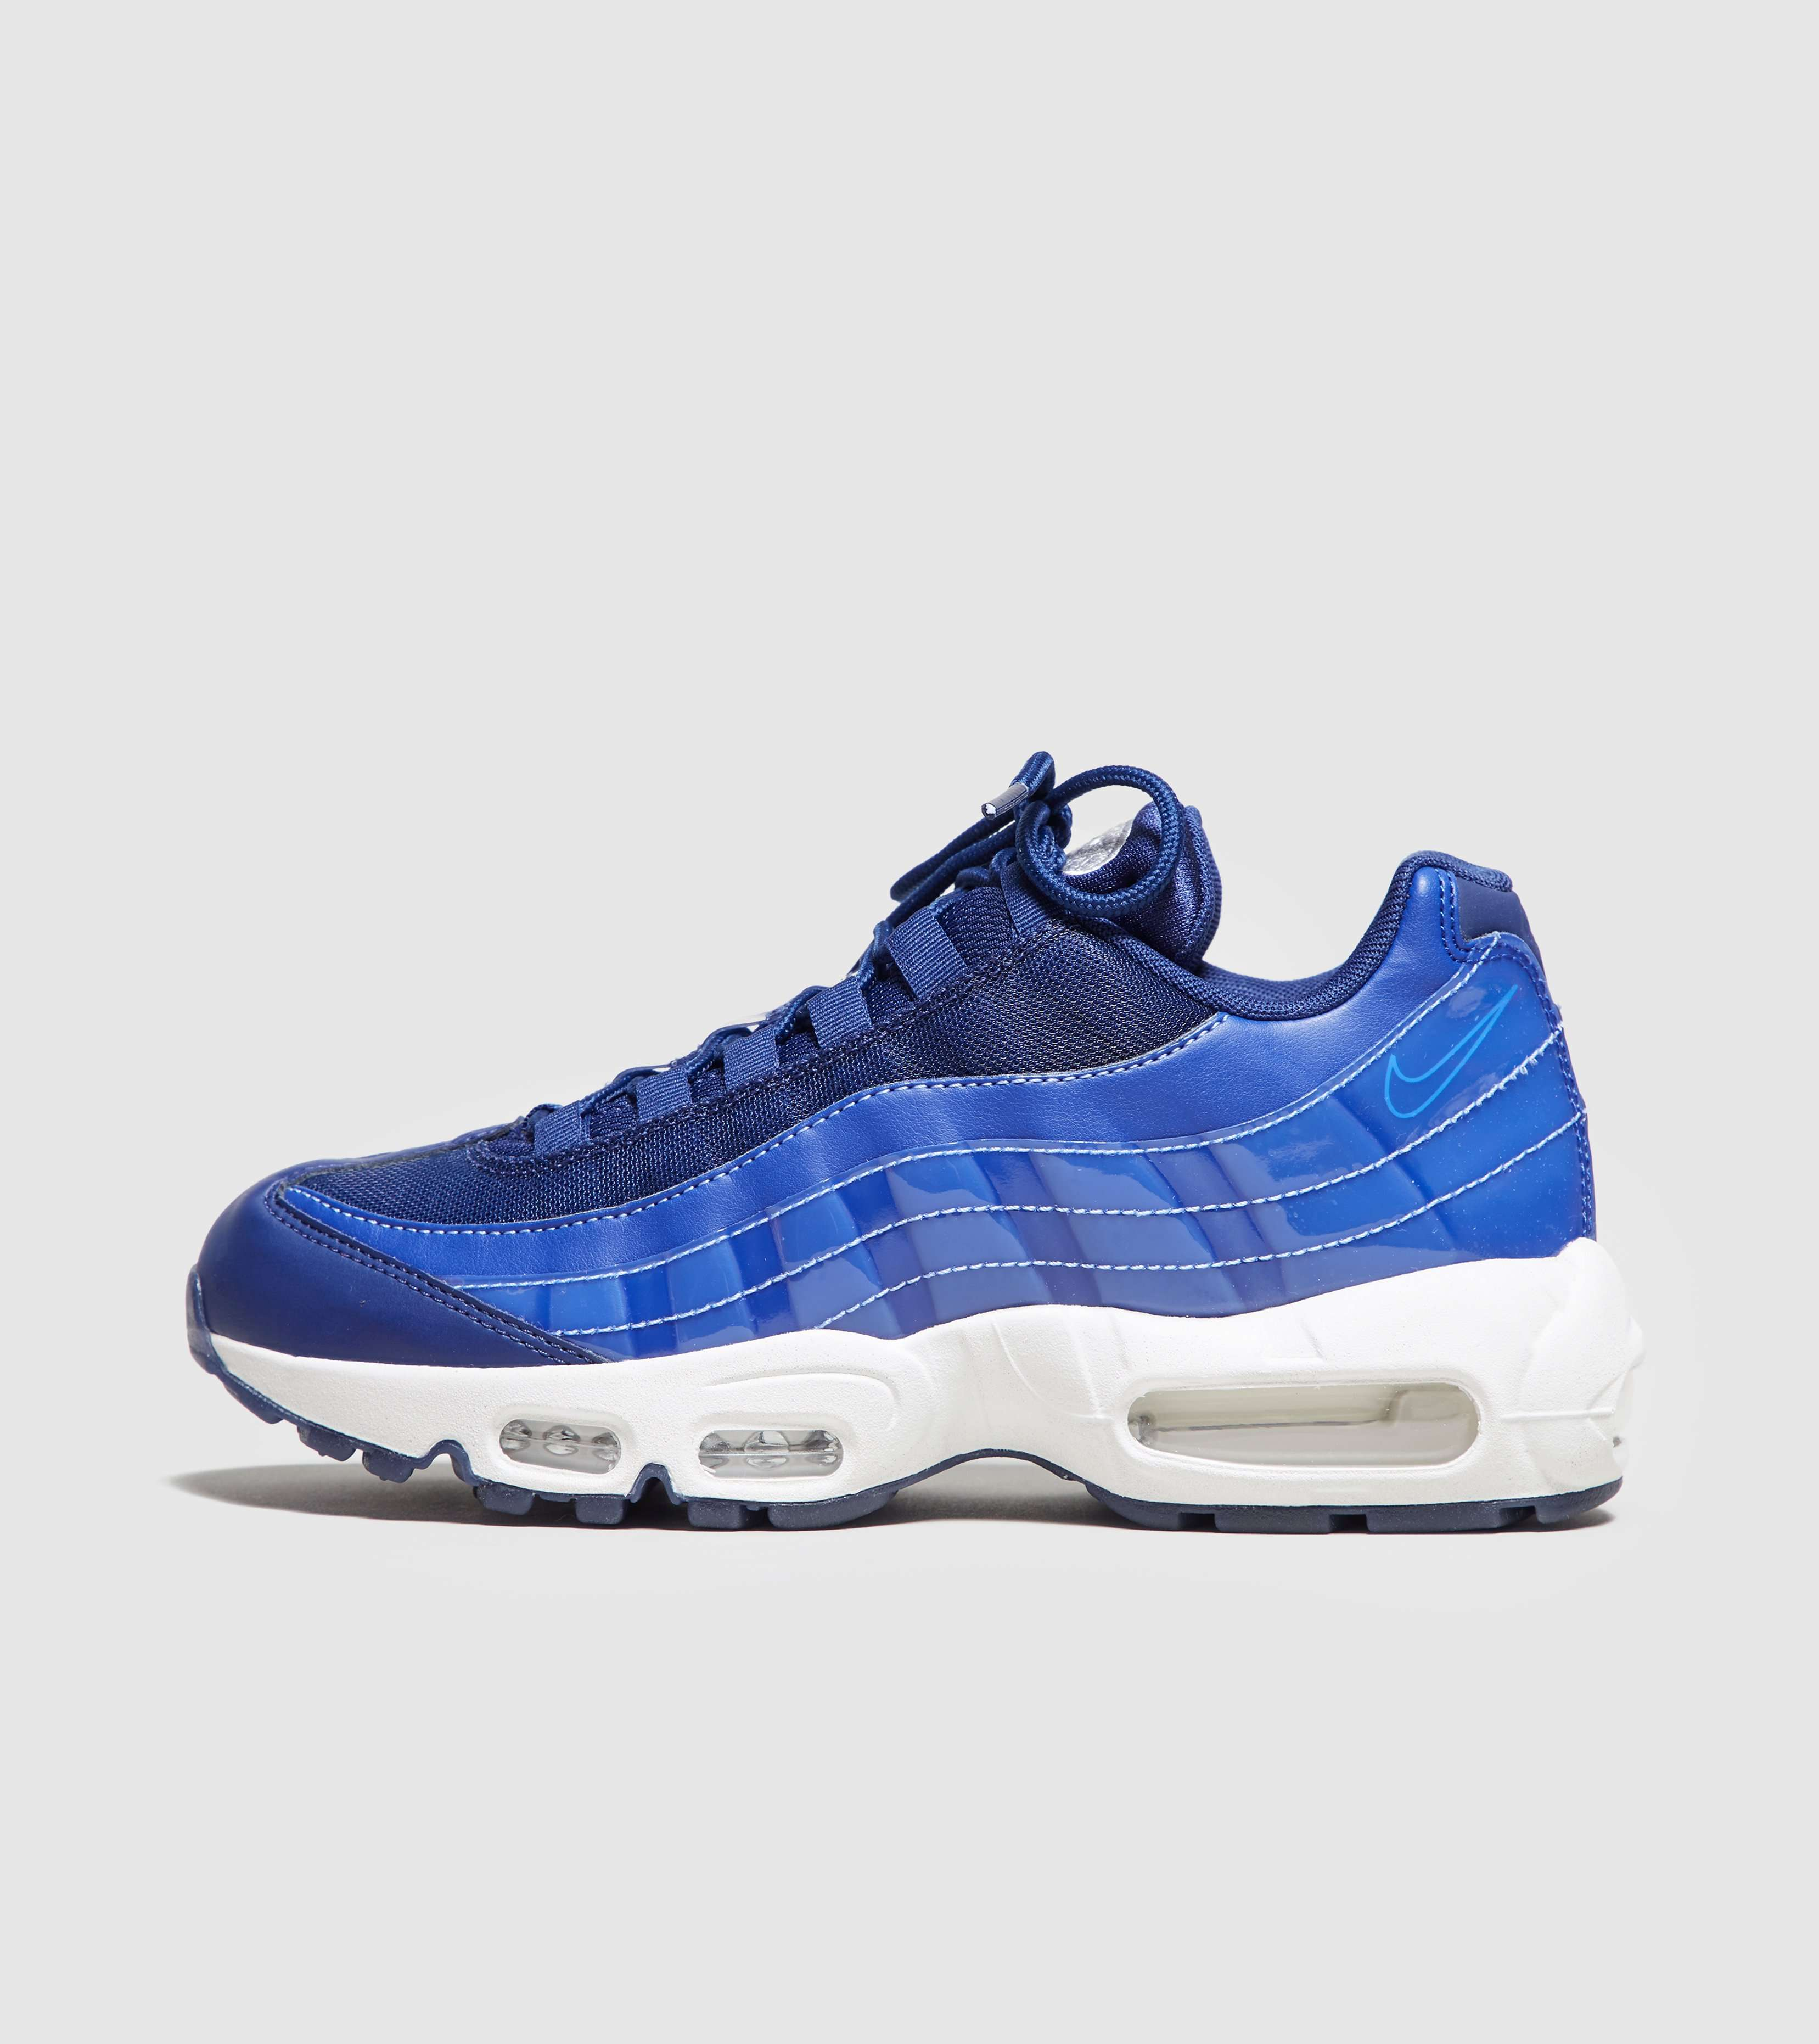 reputable site c215e 84001 Nike Air Max 95 SE Women's | Size?